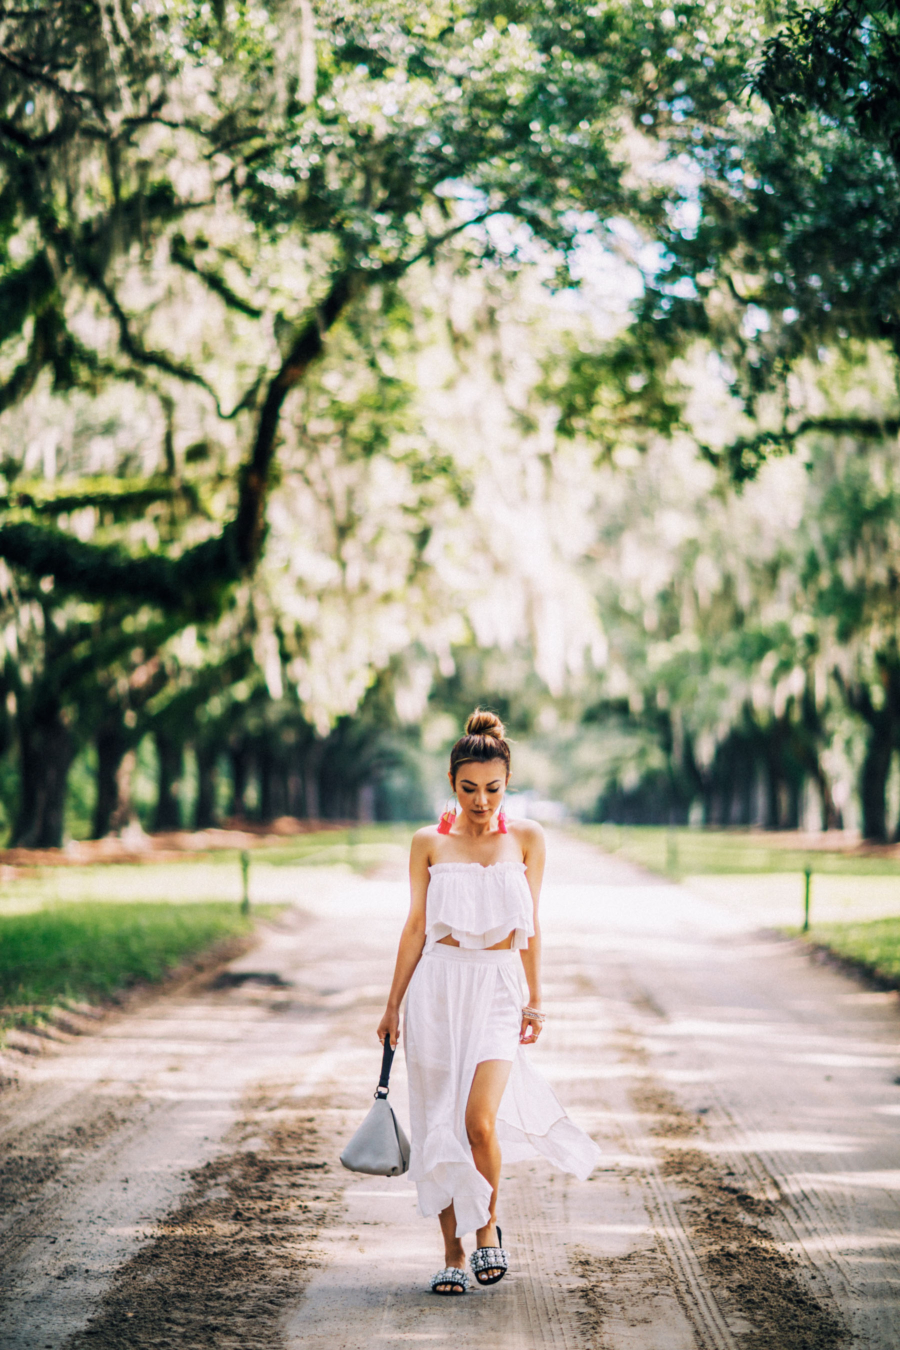 All White in Boone's Plantation - Travel Guide: 36 hours in Charleston, SC // NotJessFashion.com